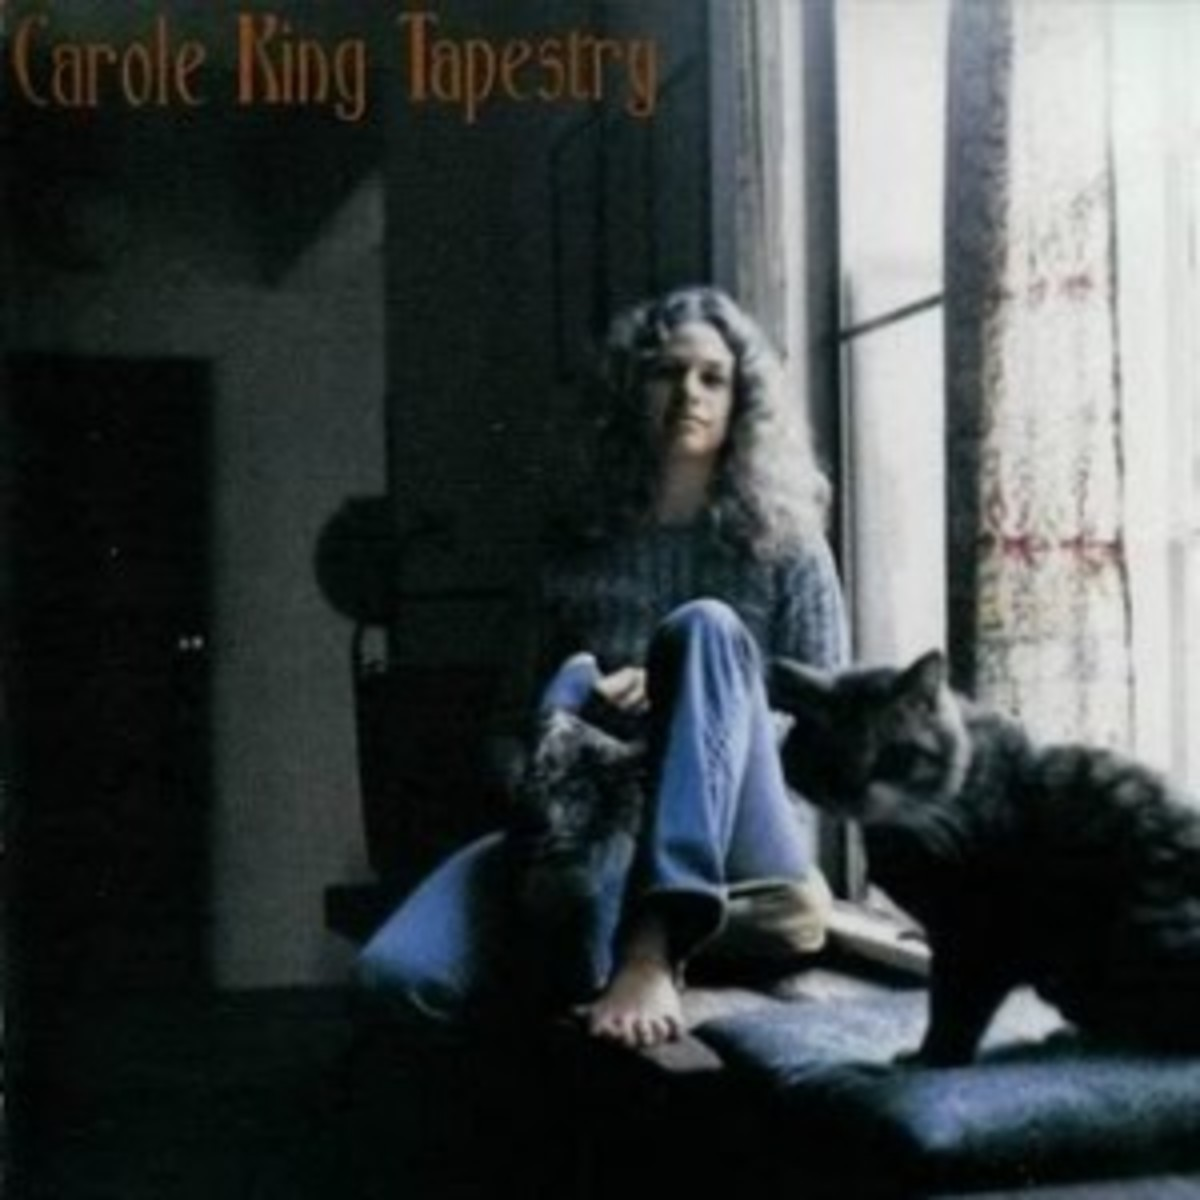 Carole_King-Tapestry-Frontal1